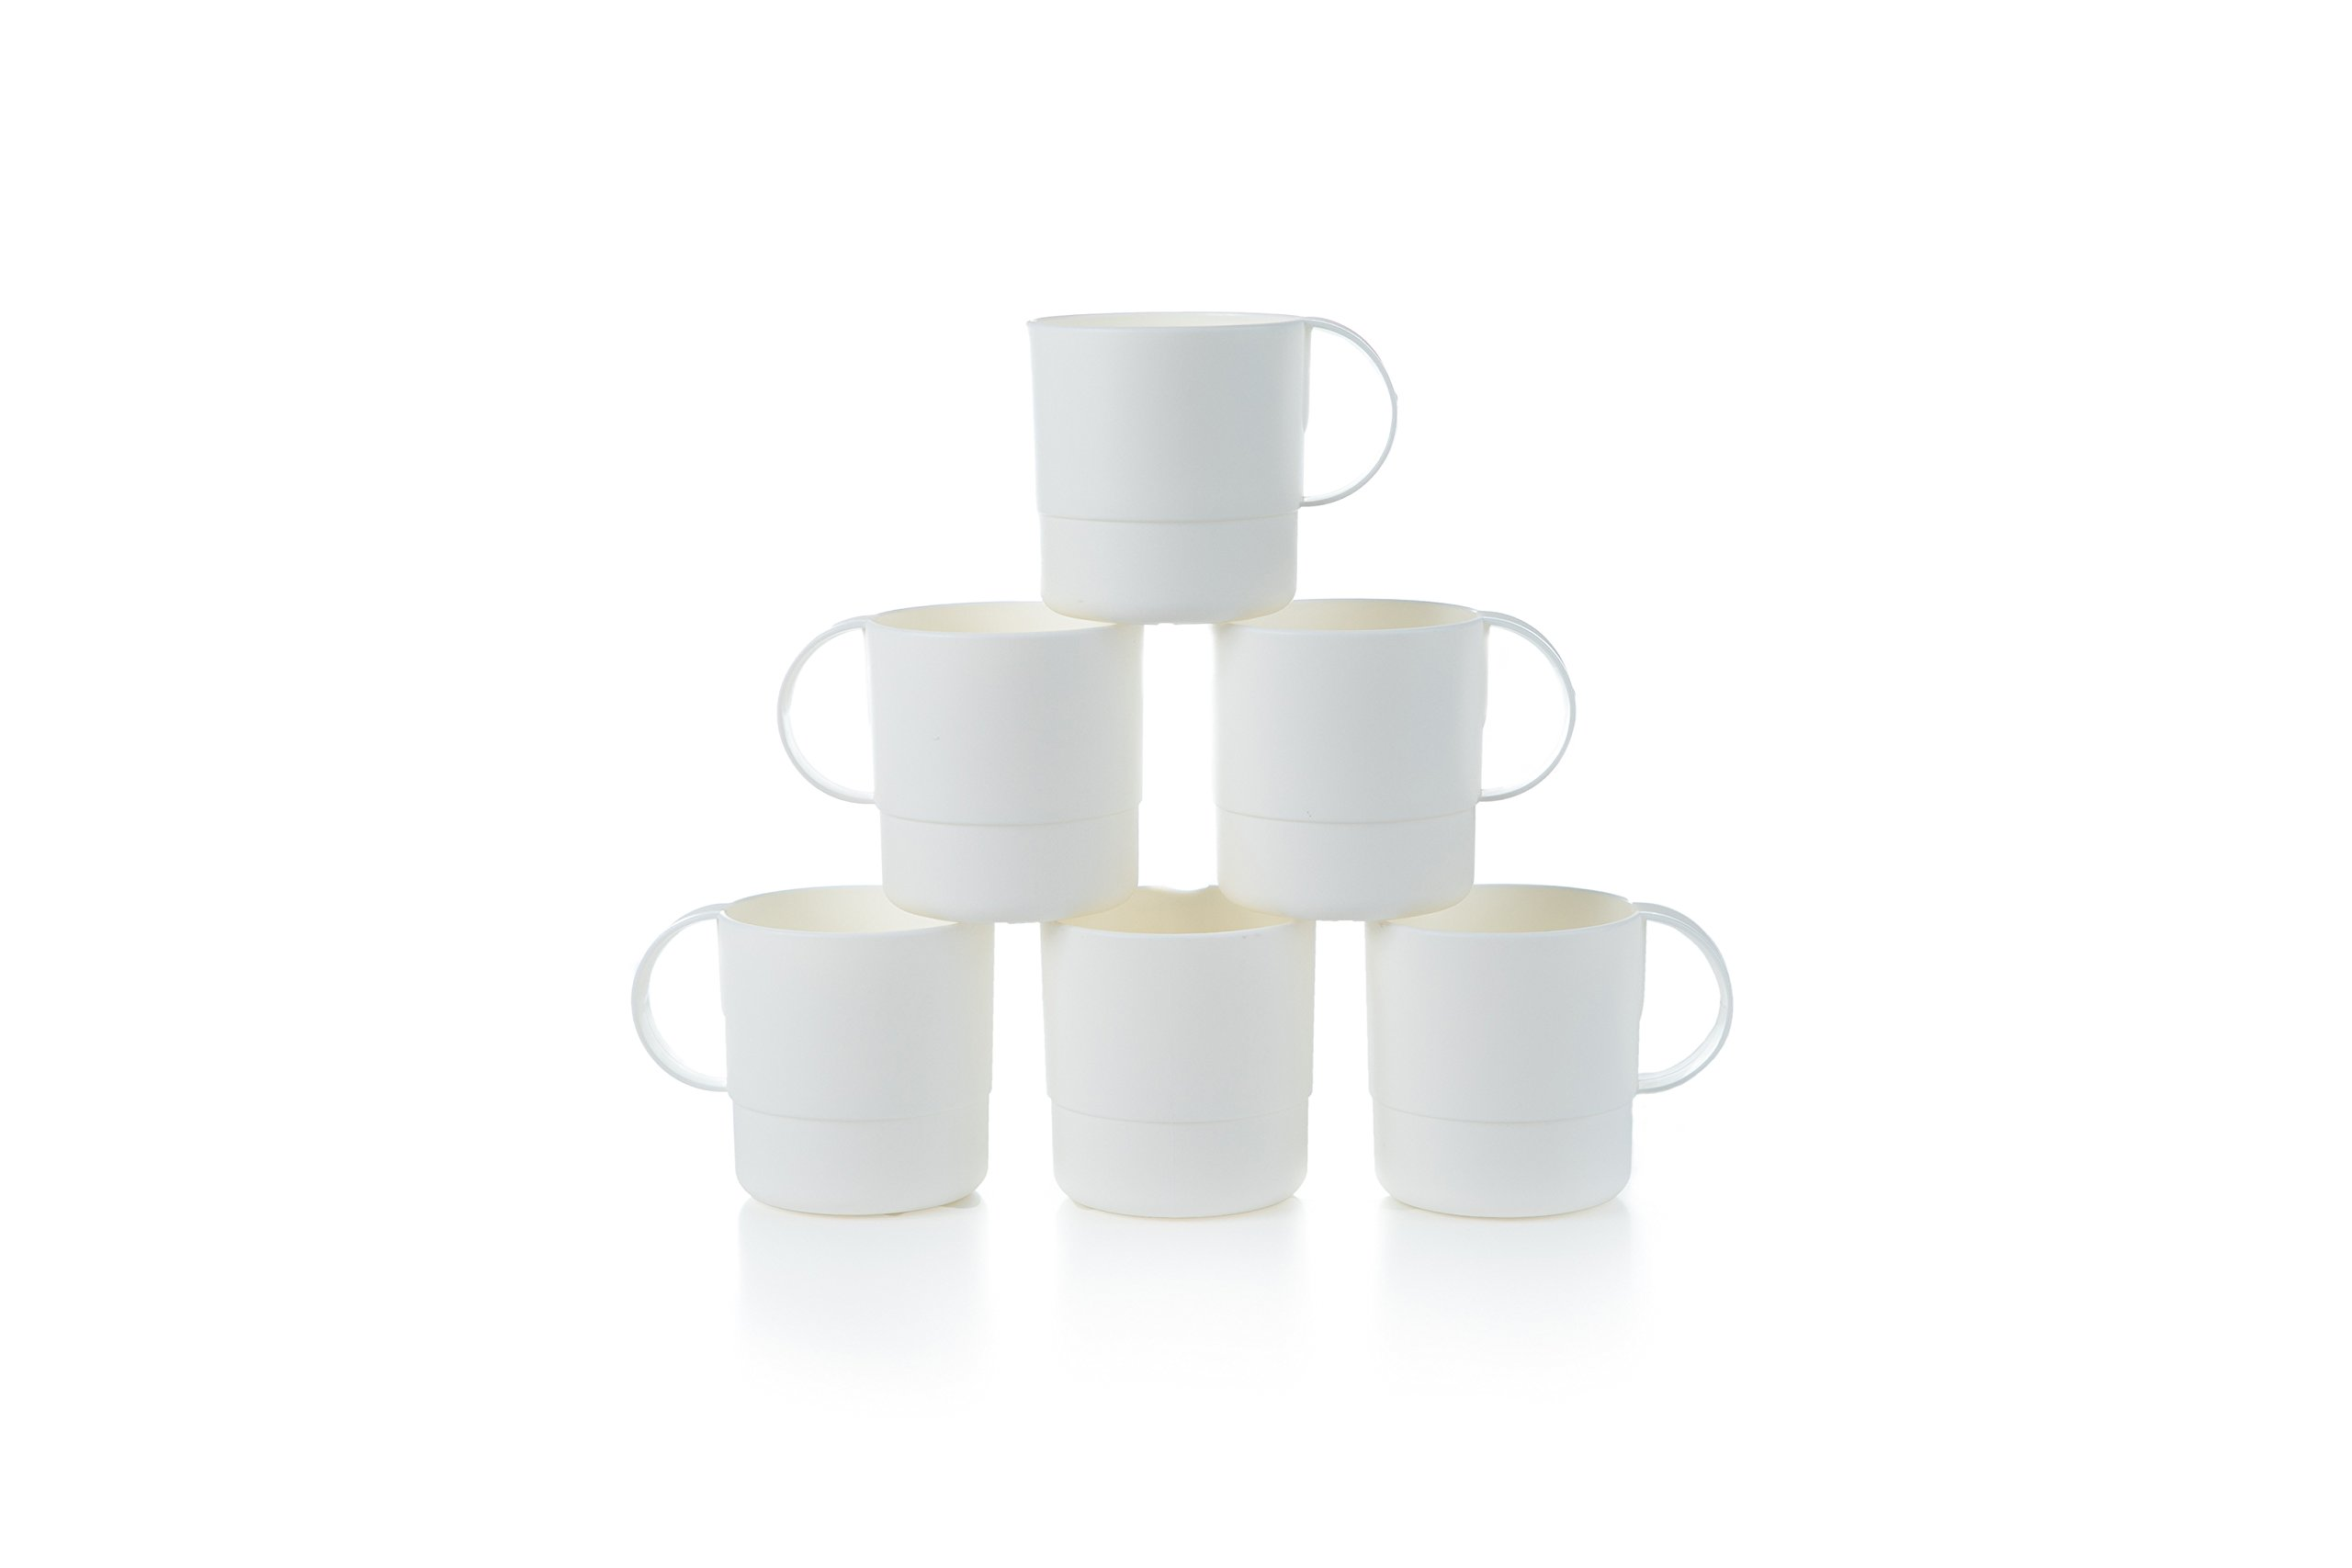 Amuse- Eco Friendly Sturdy Unbreakable & Stackable Mugs for Water, Coffee, Milk, Juice, Tea- Set of 6-11 oz (White)